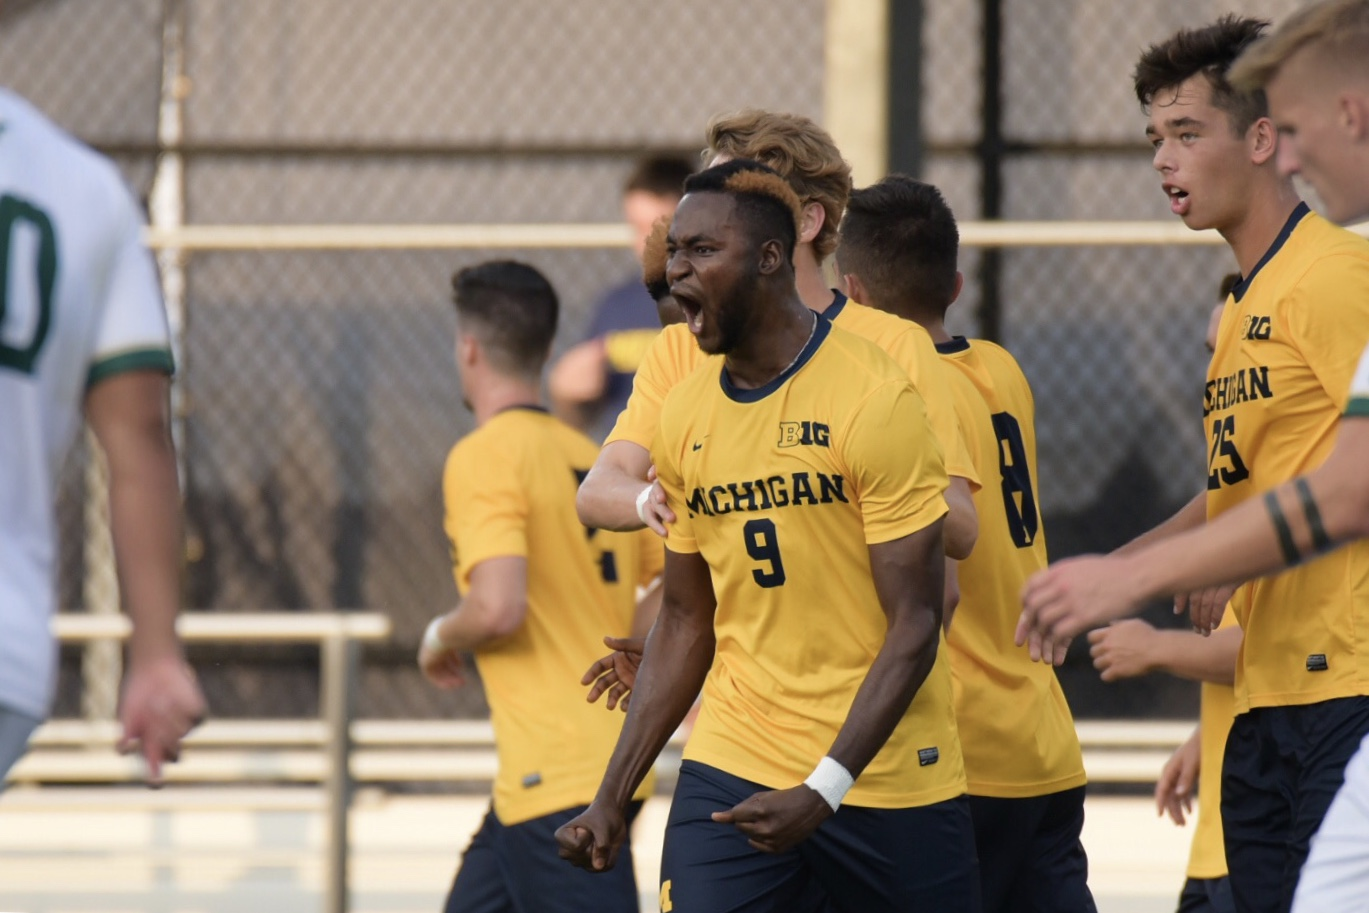 Mohammed Zakyi (#9) celebrates his free kick goal in Michigan's 2-0 win against South Florida.